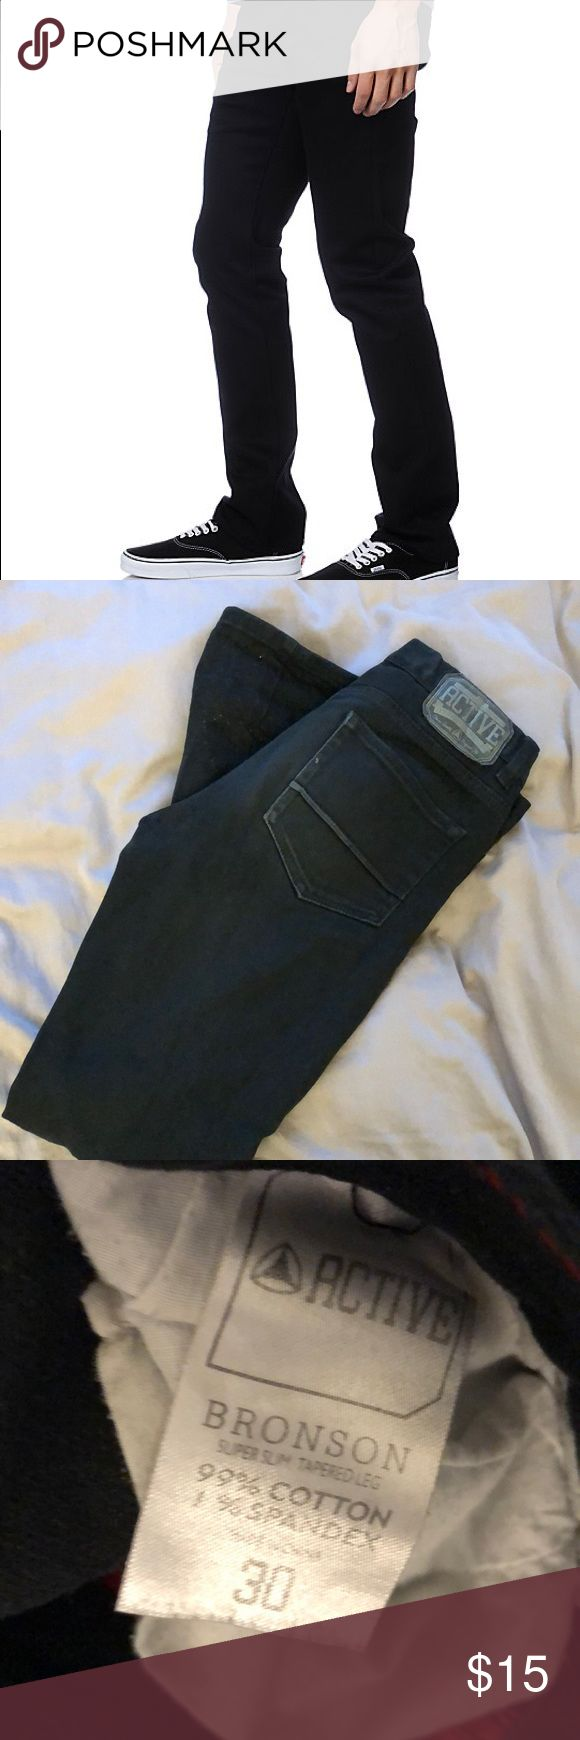 Active Ride Shop black skinny jeans Brand: ACTIVE Fit: Skinny through opening  W:30L:36 99%cotton 1% spandex high quality construction  Reasonable offers or bundles accepted! Active Ride Shop Jeans Skinny